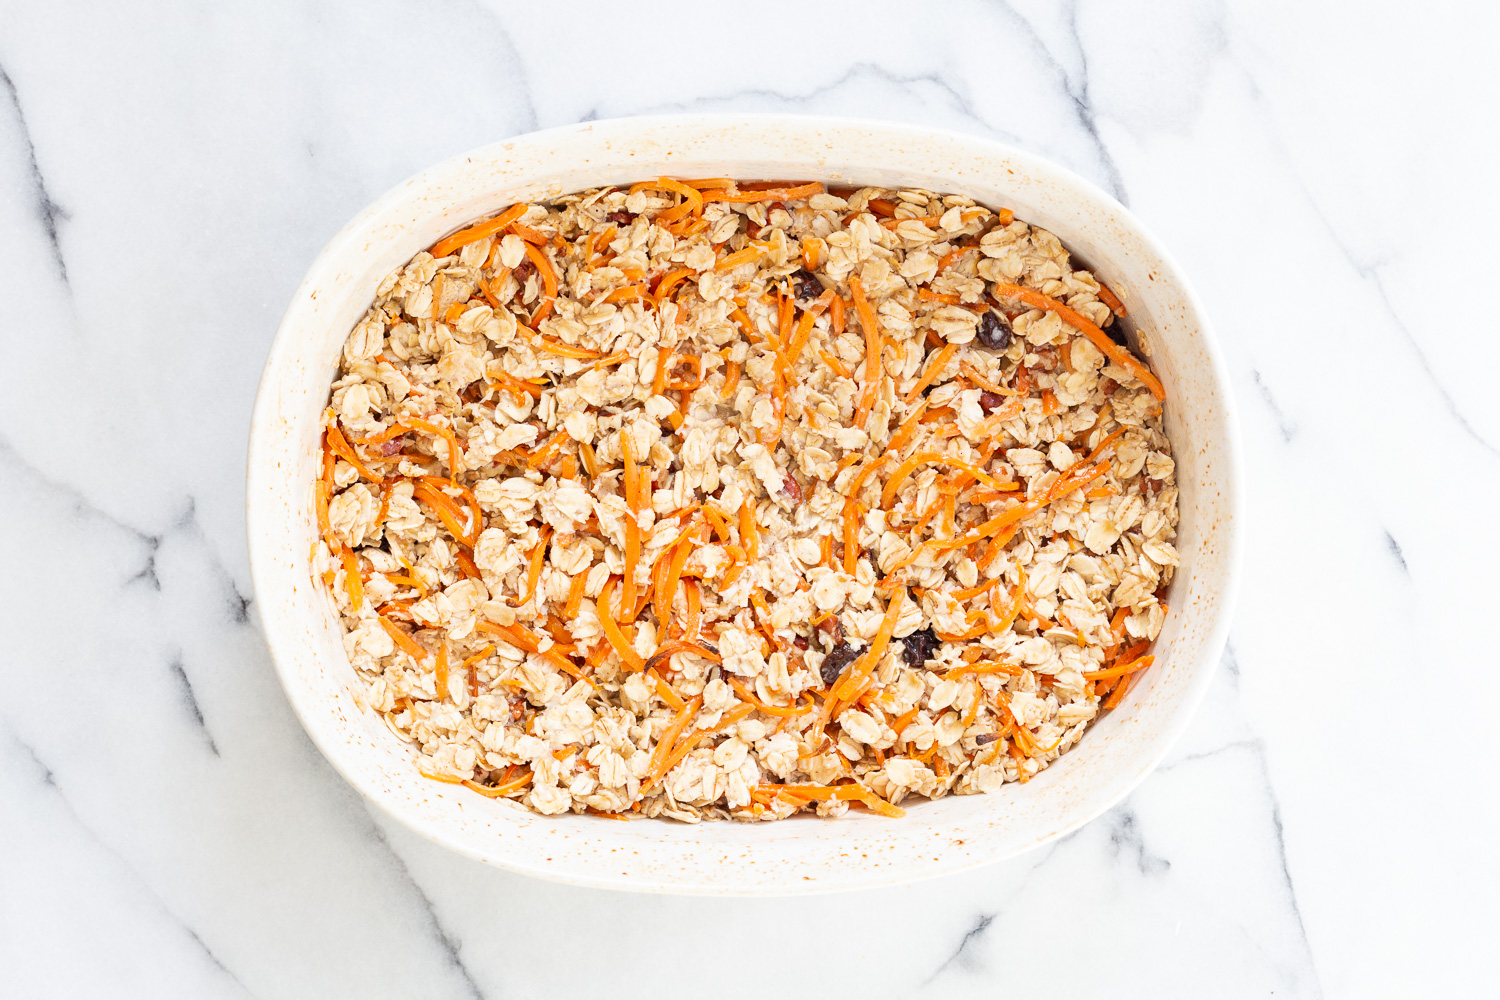 Our Vegan Carrot Cake Baked Oatmeal ready tobake in a white baking dish